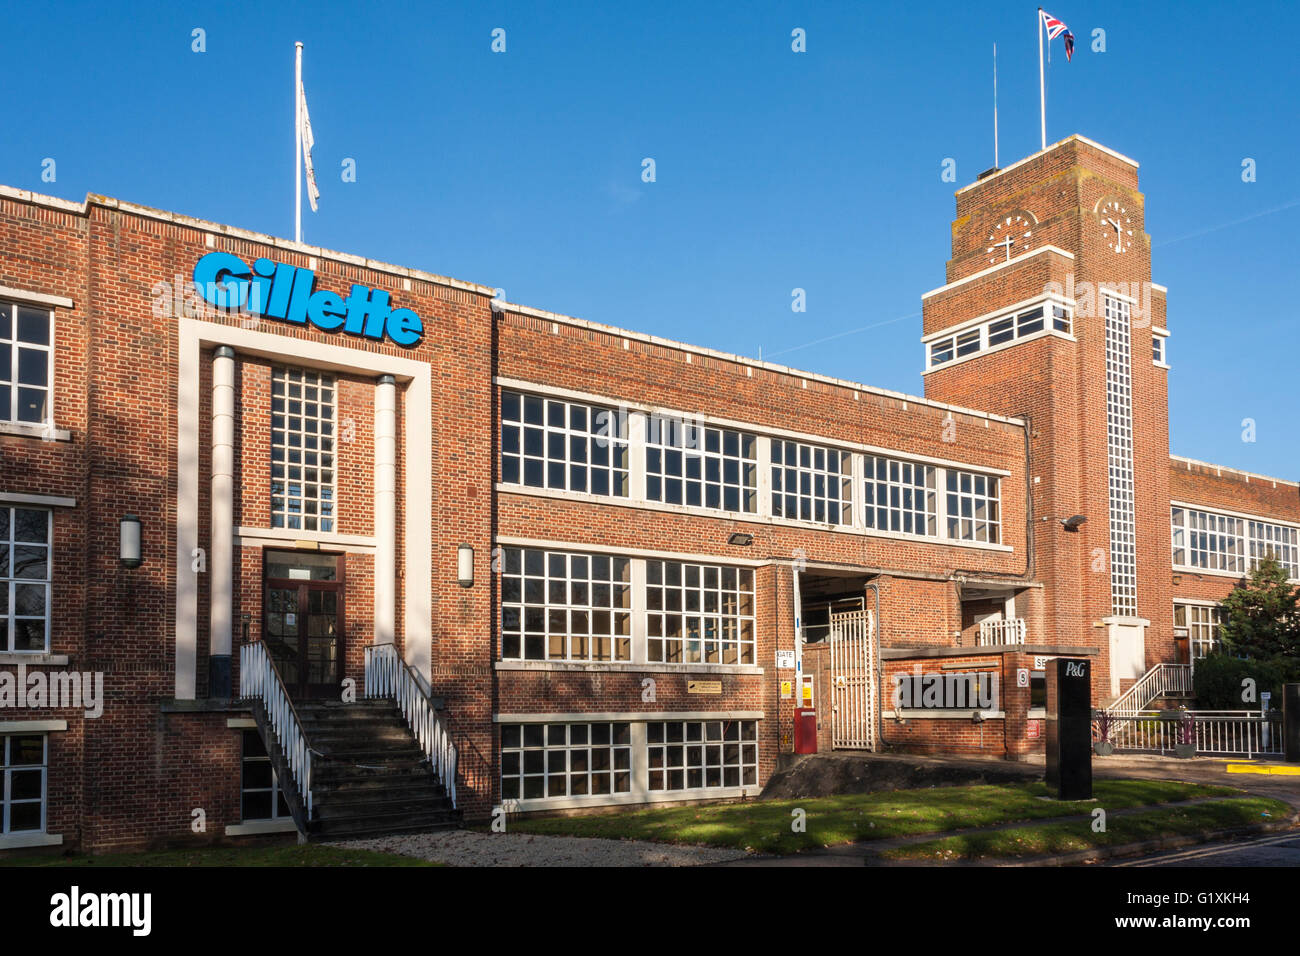 Gillette factory exterior. Reading, Berkshire, England, GB, UK. - Stock Image